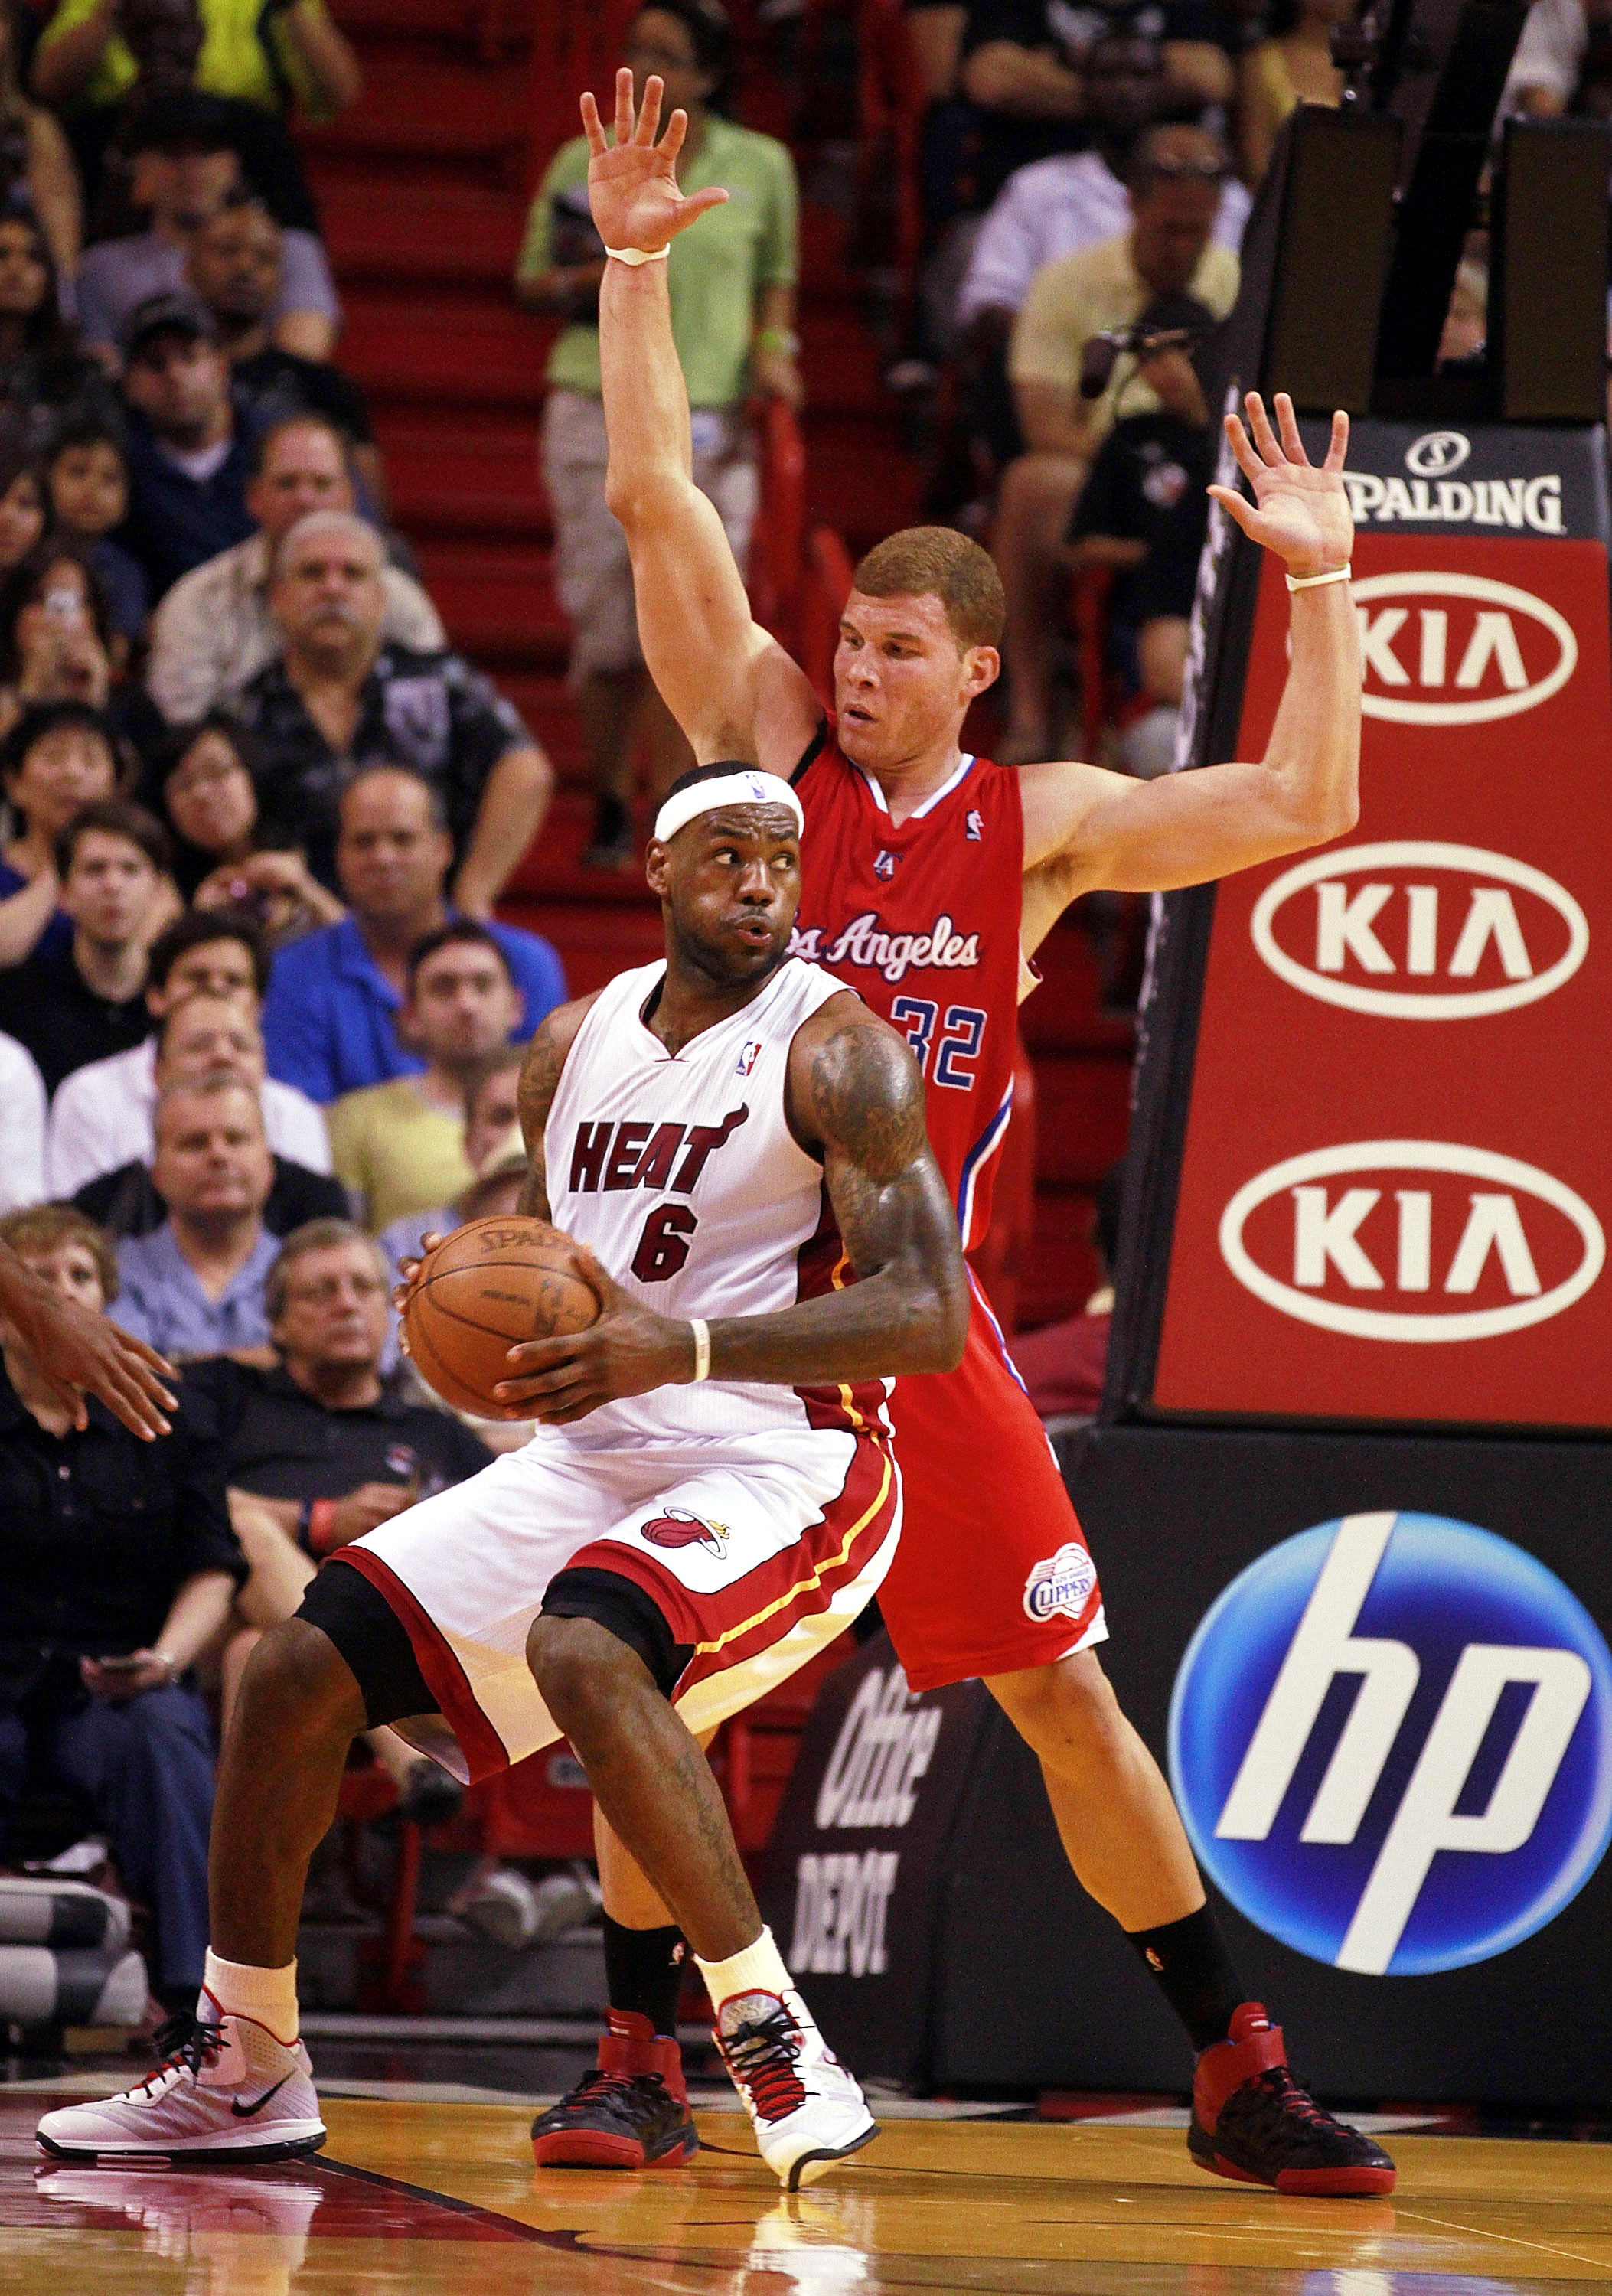 MIAMI - FEBRUARY 06:  Forward LeBron James #6 of the Miami Heat passes against guard Forward Blake Griffin #32 of the L.A. Clippers at American Airlines Arena on February 6, 2011 in Miami, Florida. NOTE TO USER: User expressly acknowledges and agrees that